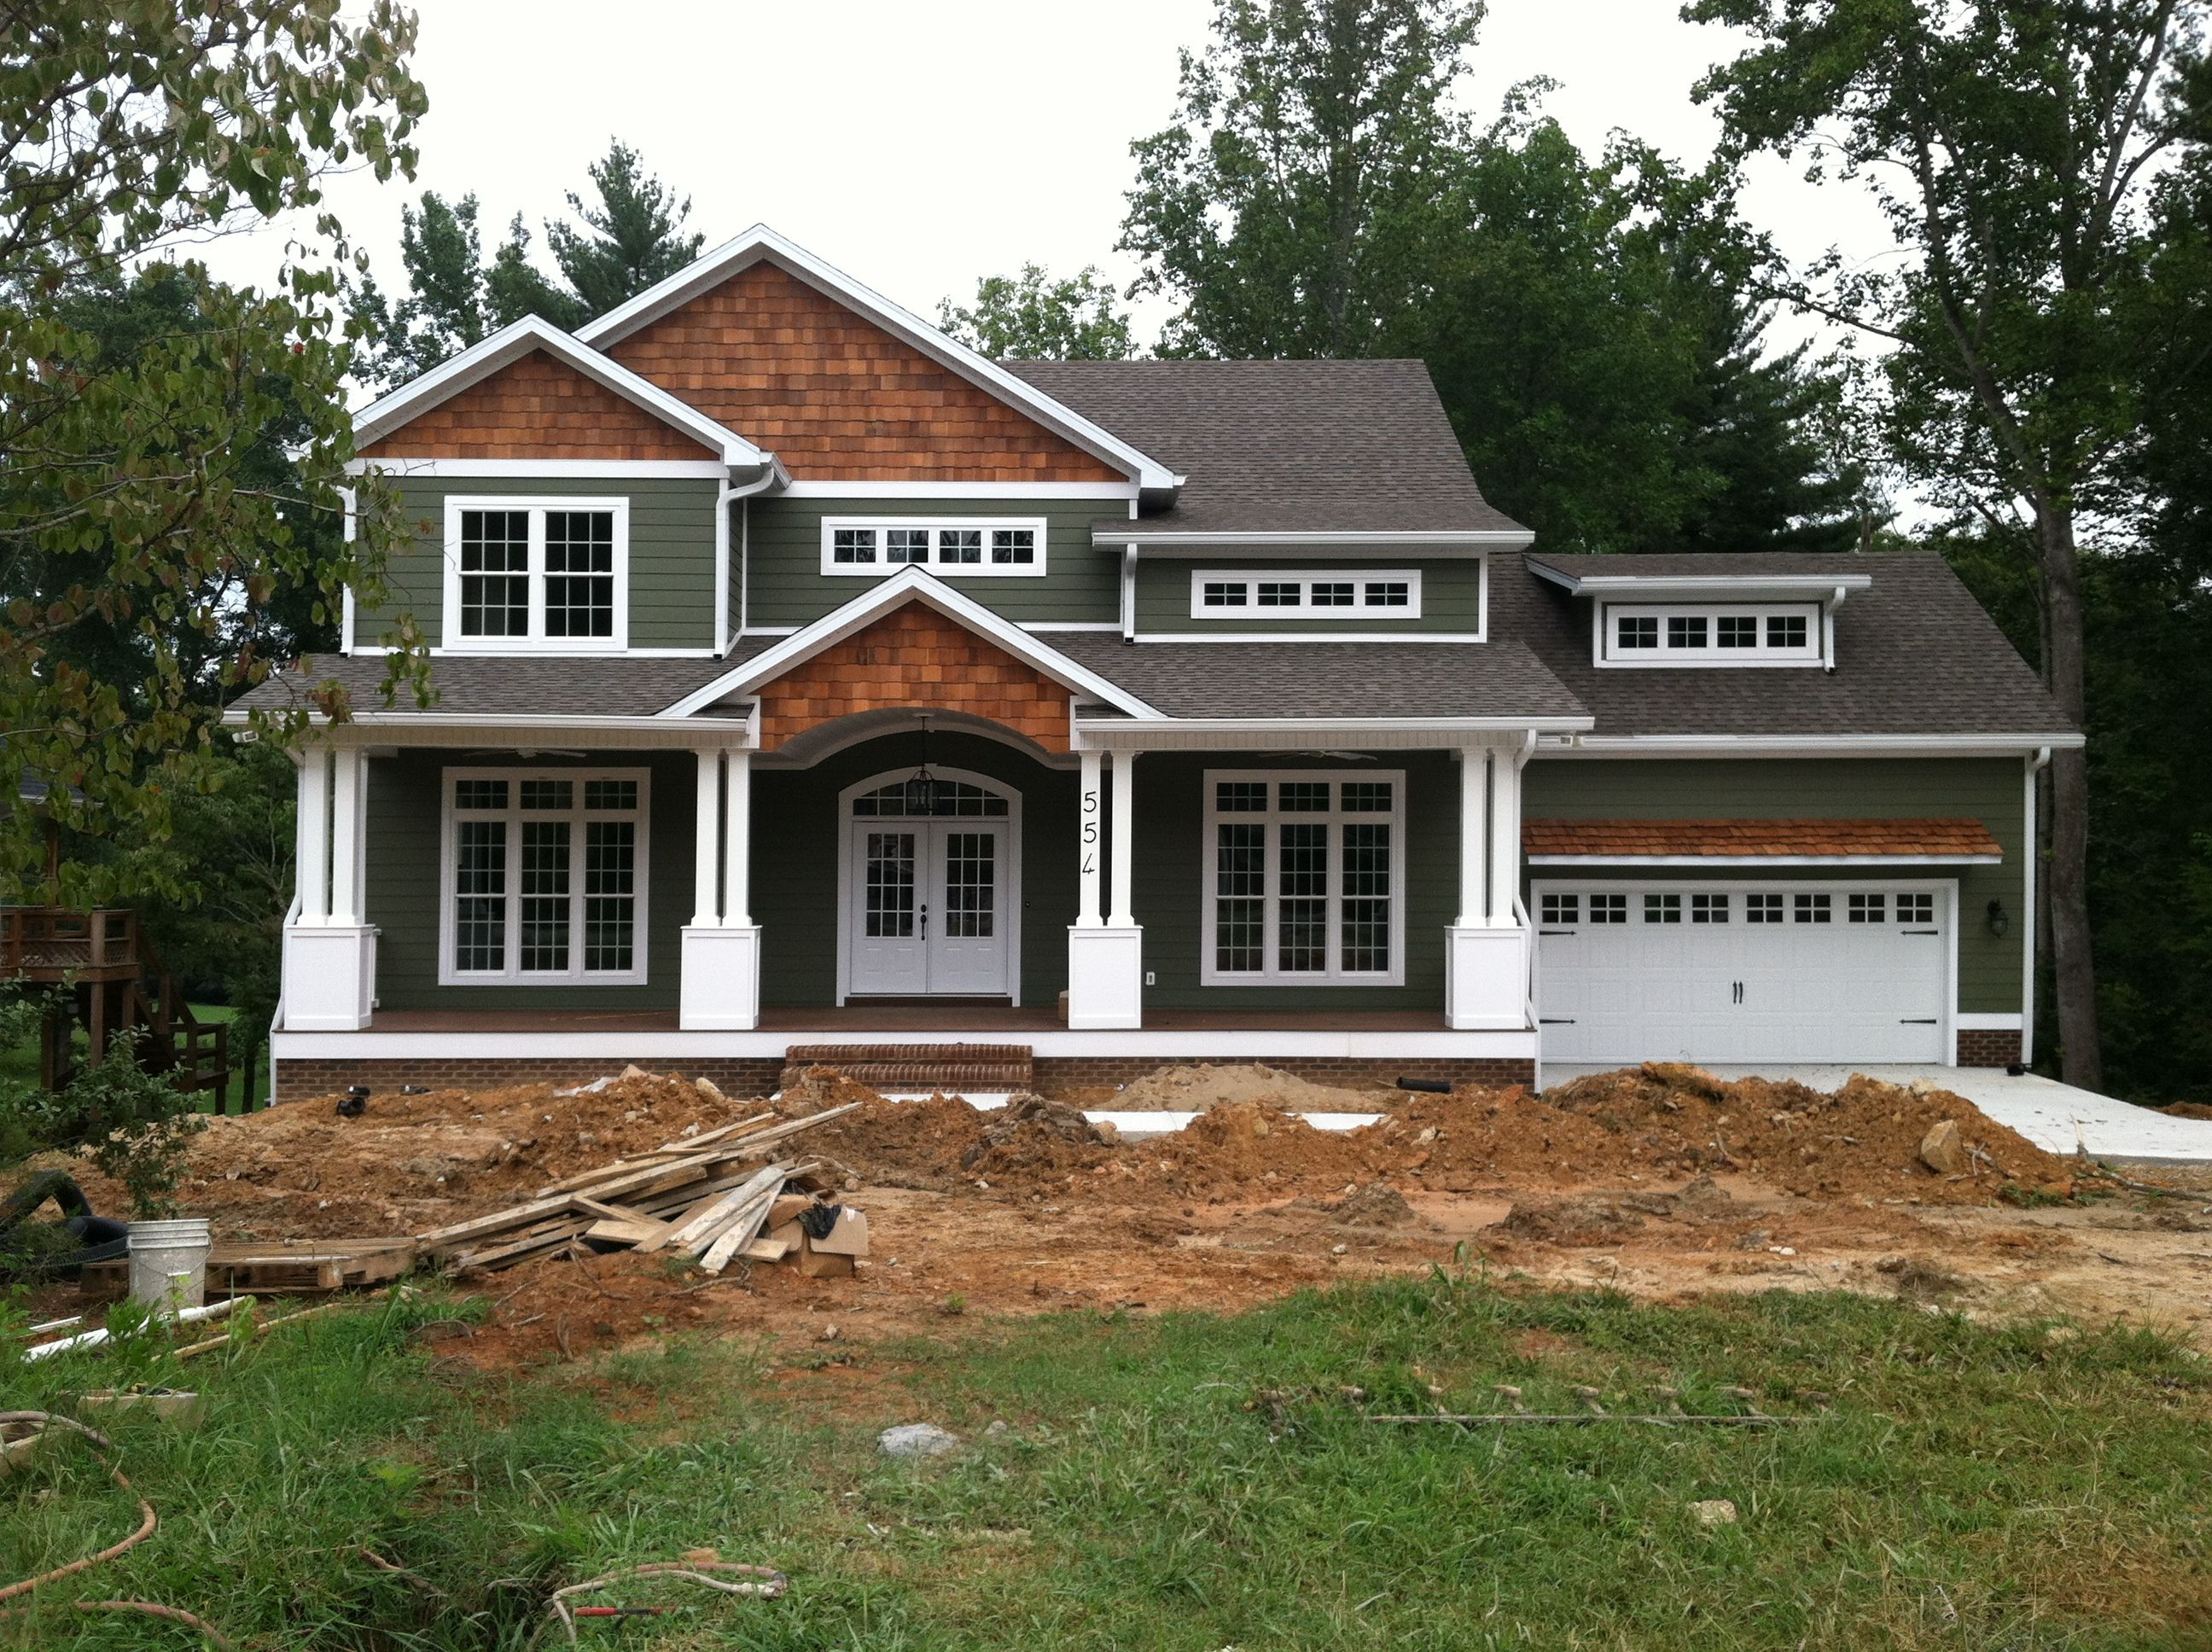 Craftsman Style Home Turn The Garage To The Side Change The Color And Add Some Rock Work